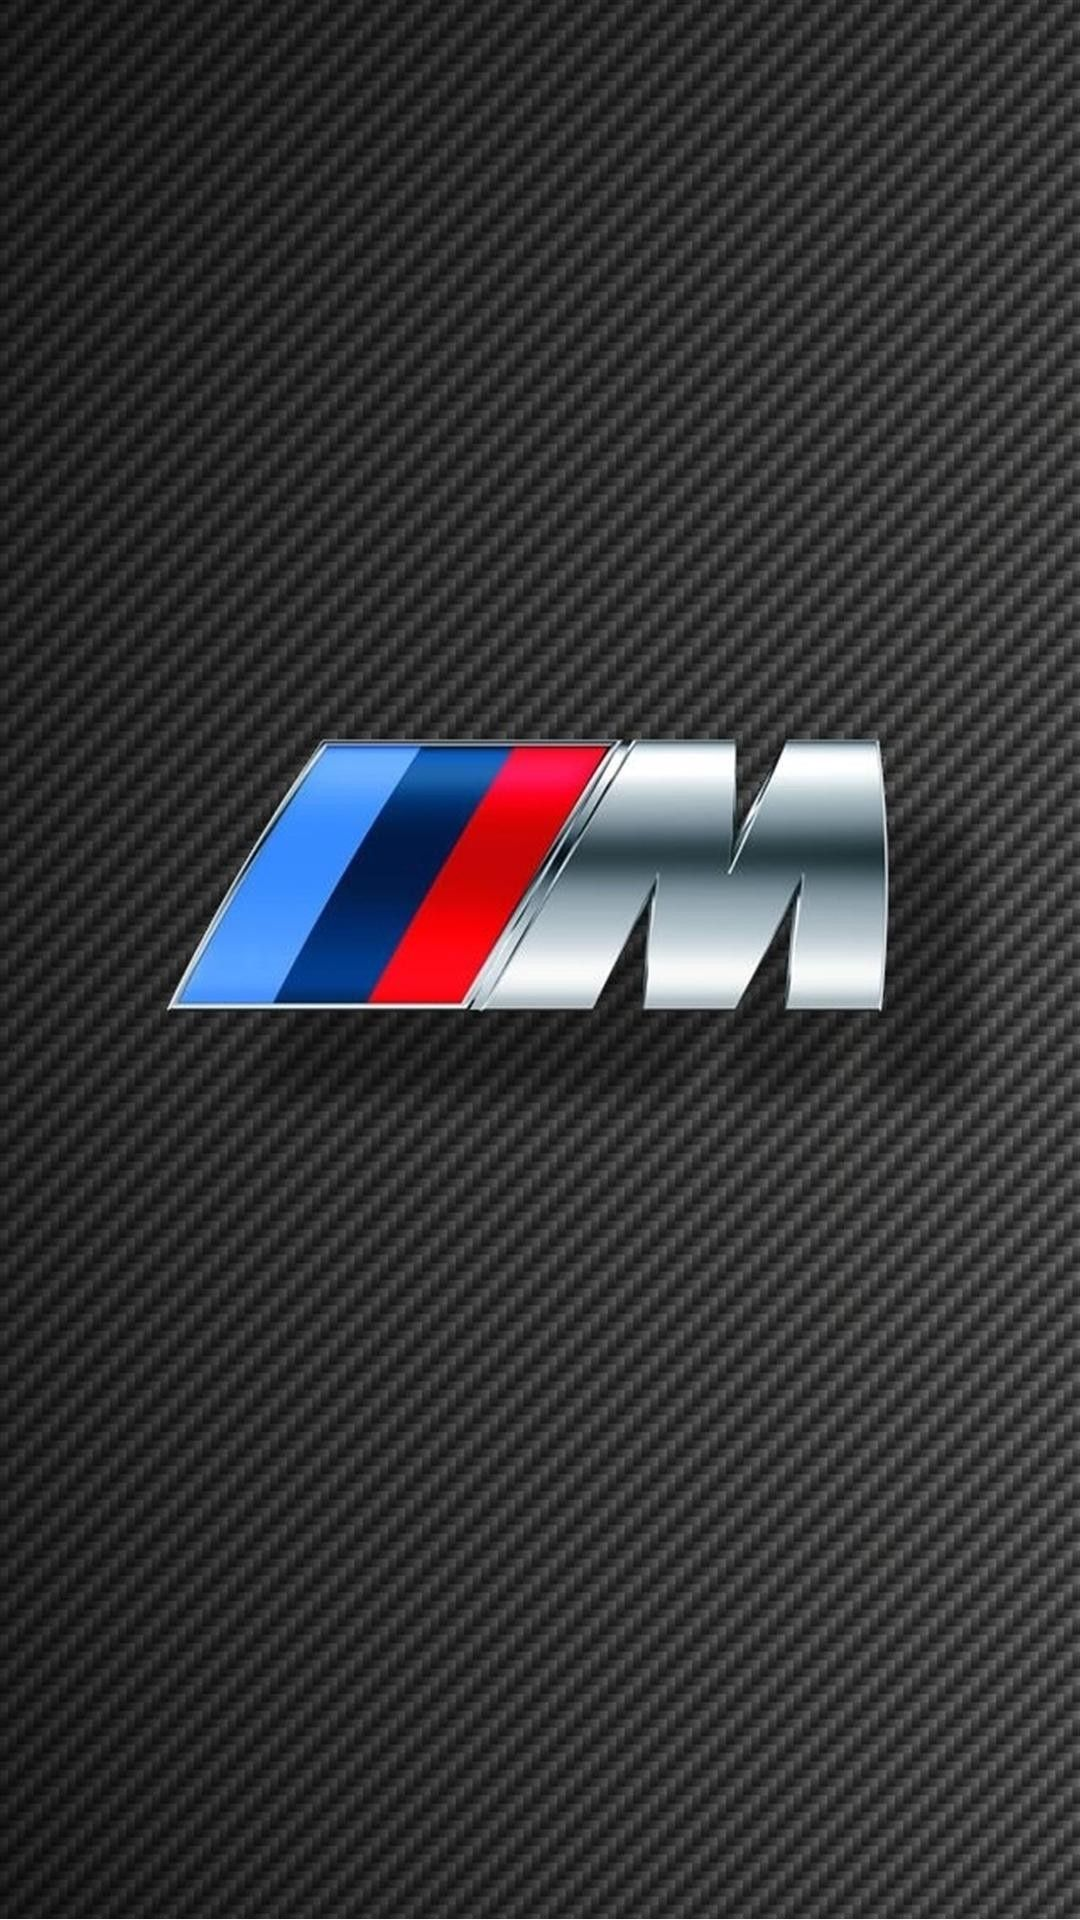 1080x1920 Pin by skverna on Background / Brands | Pinterest | Bmw wallpapers ...